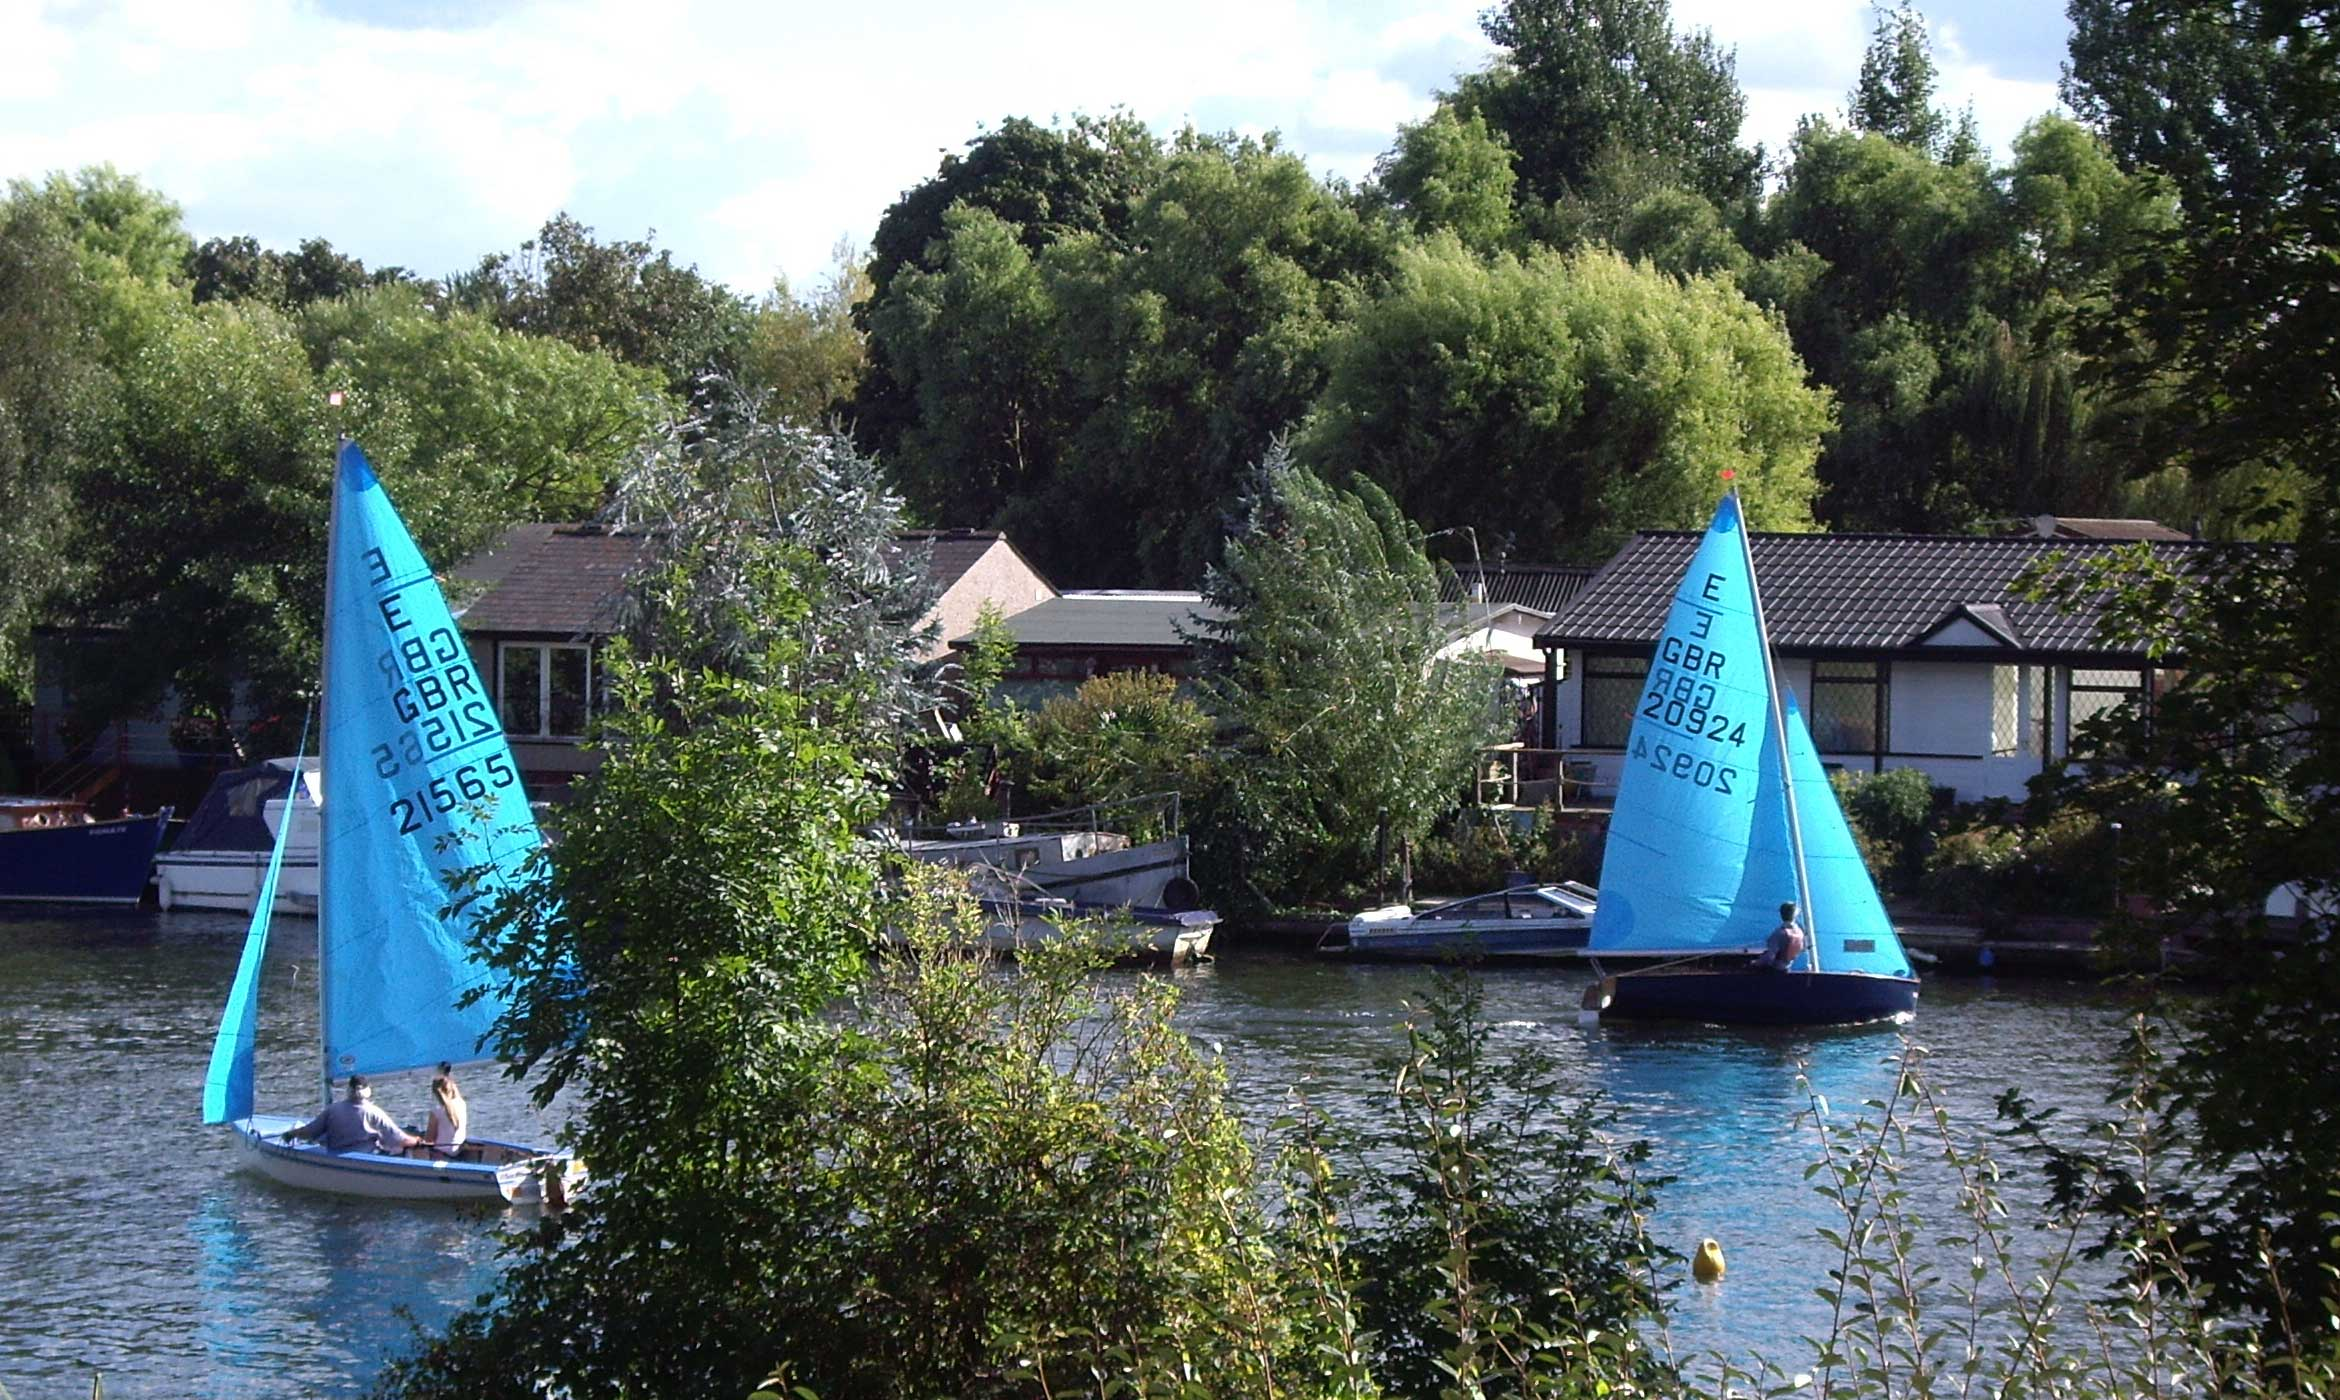 Sailing boats on the Thames